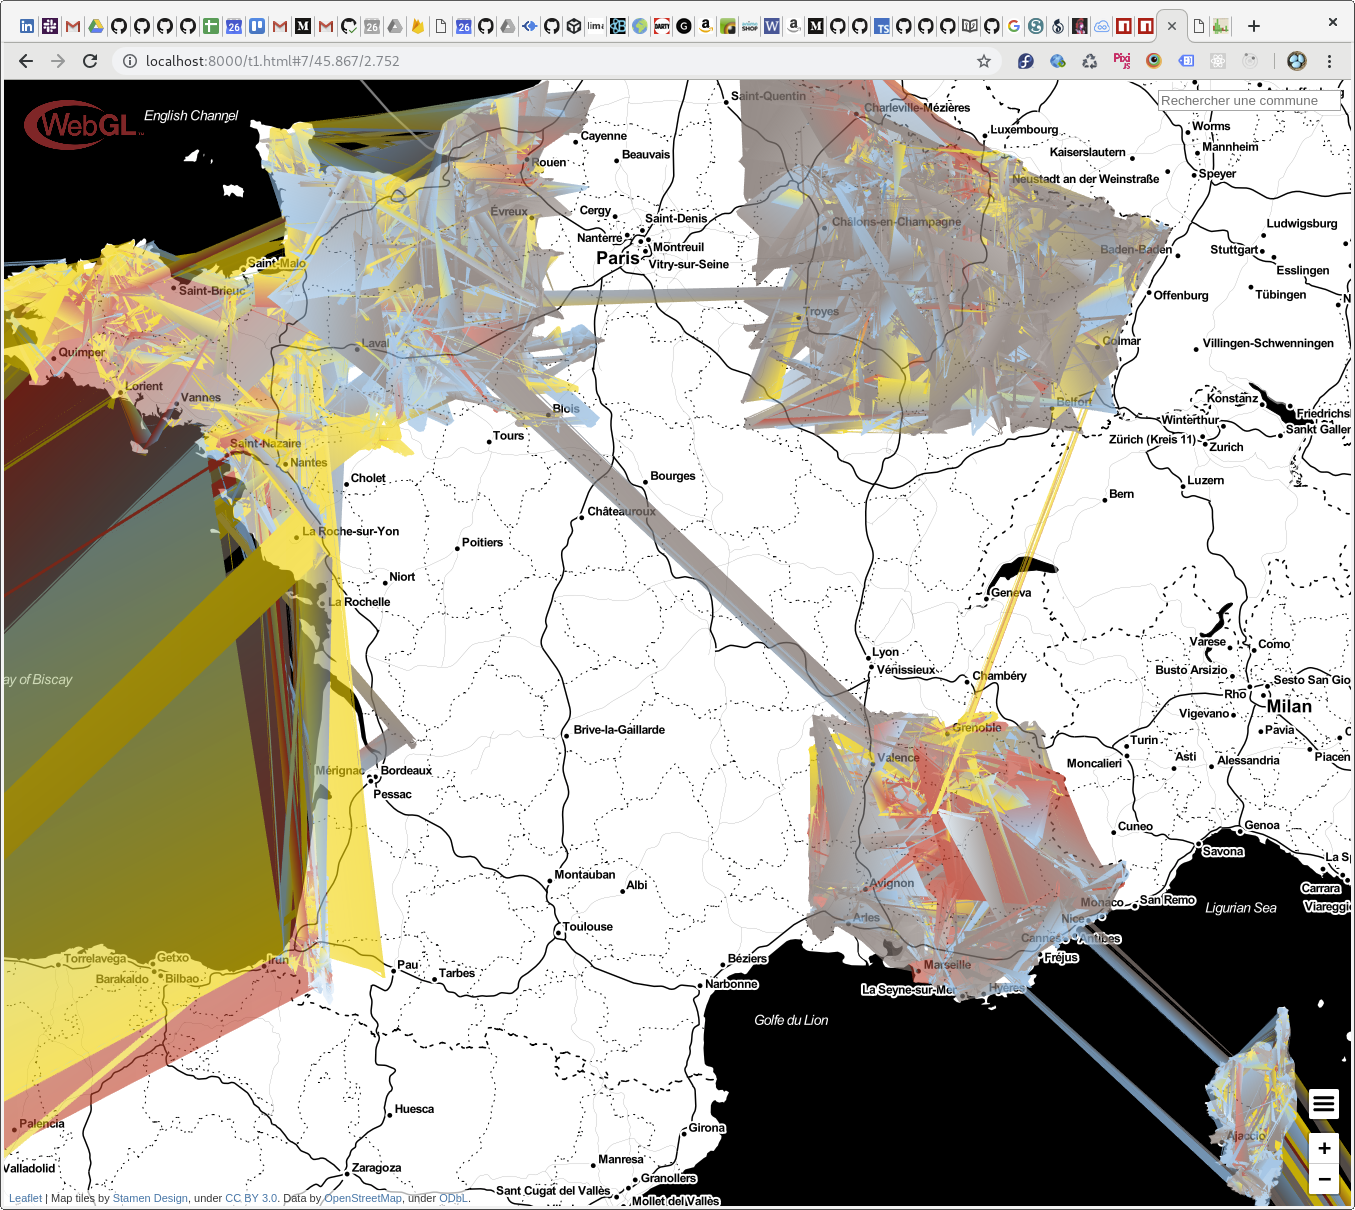 v5-rc 2] Bug when rendering many polygons with WebGL · Issue #5479